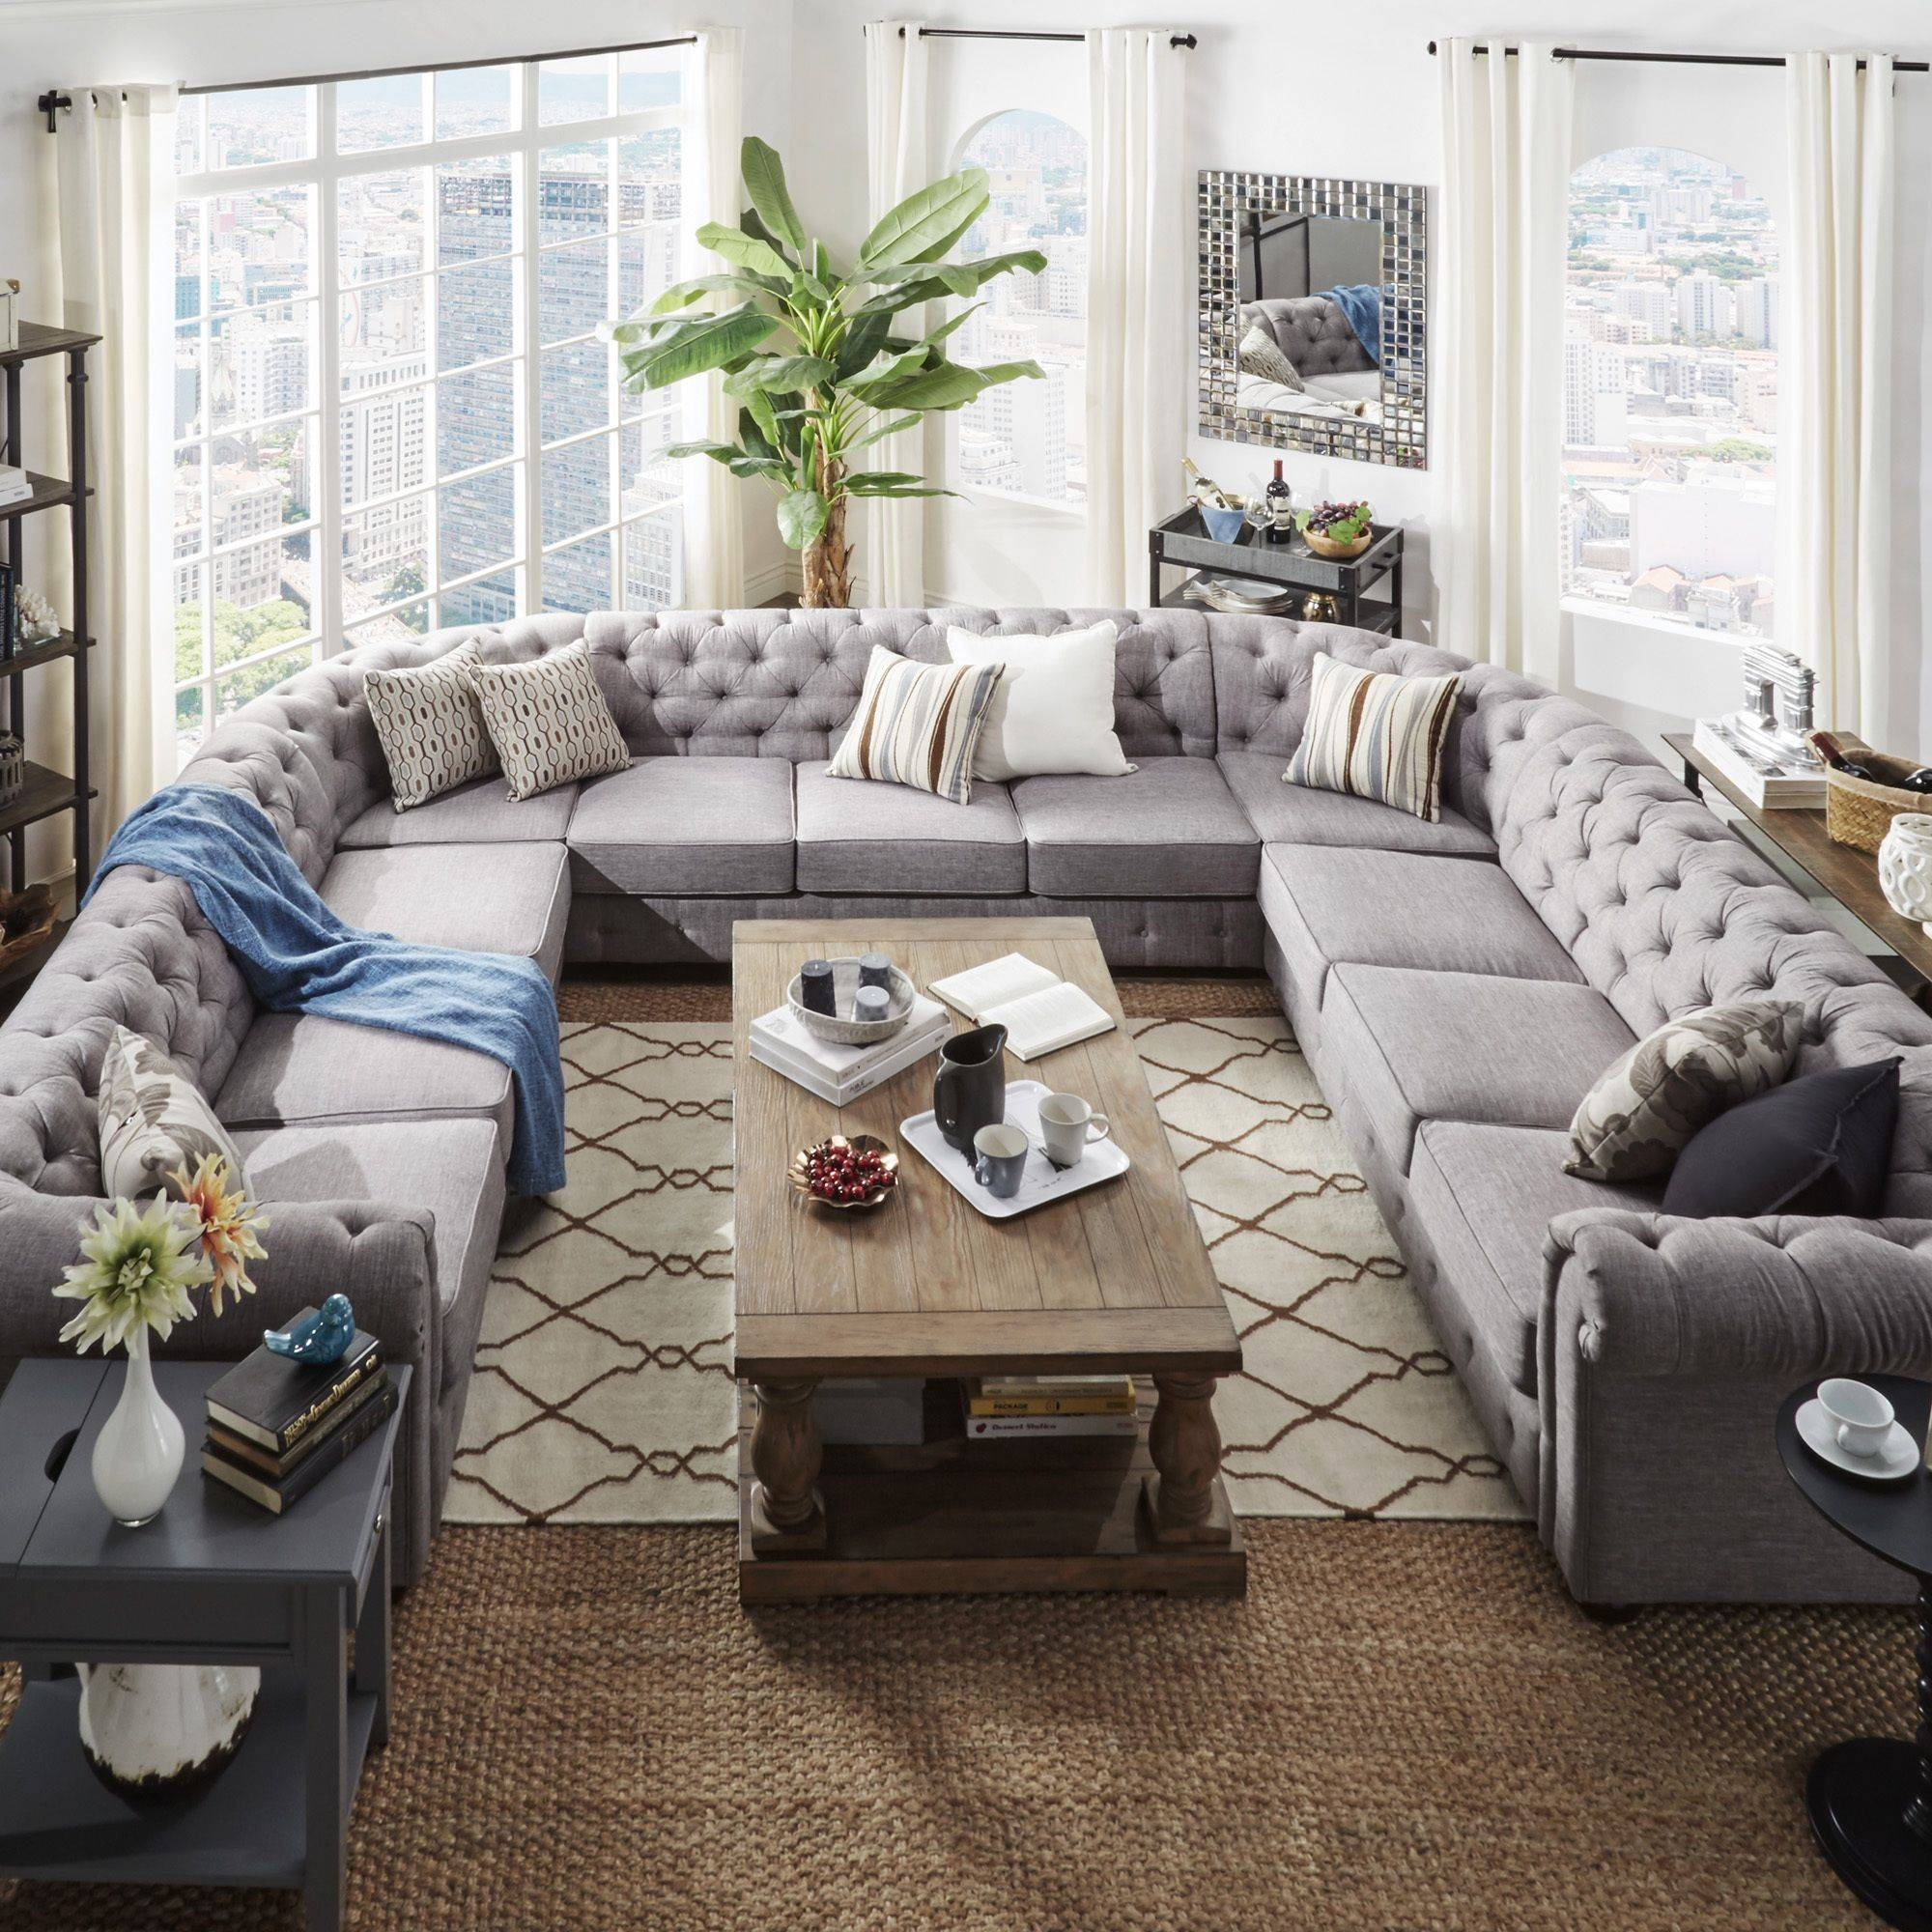 Sofa: Beautiful Overstock Sectional Sofas For Cozy Living Room intended for Cozy Sectional Sofas (Image 18 of 30)